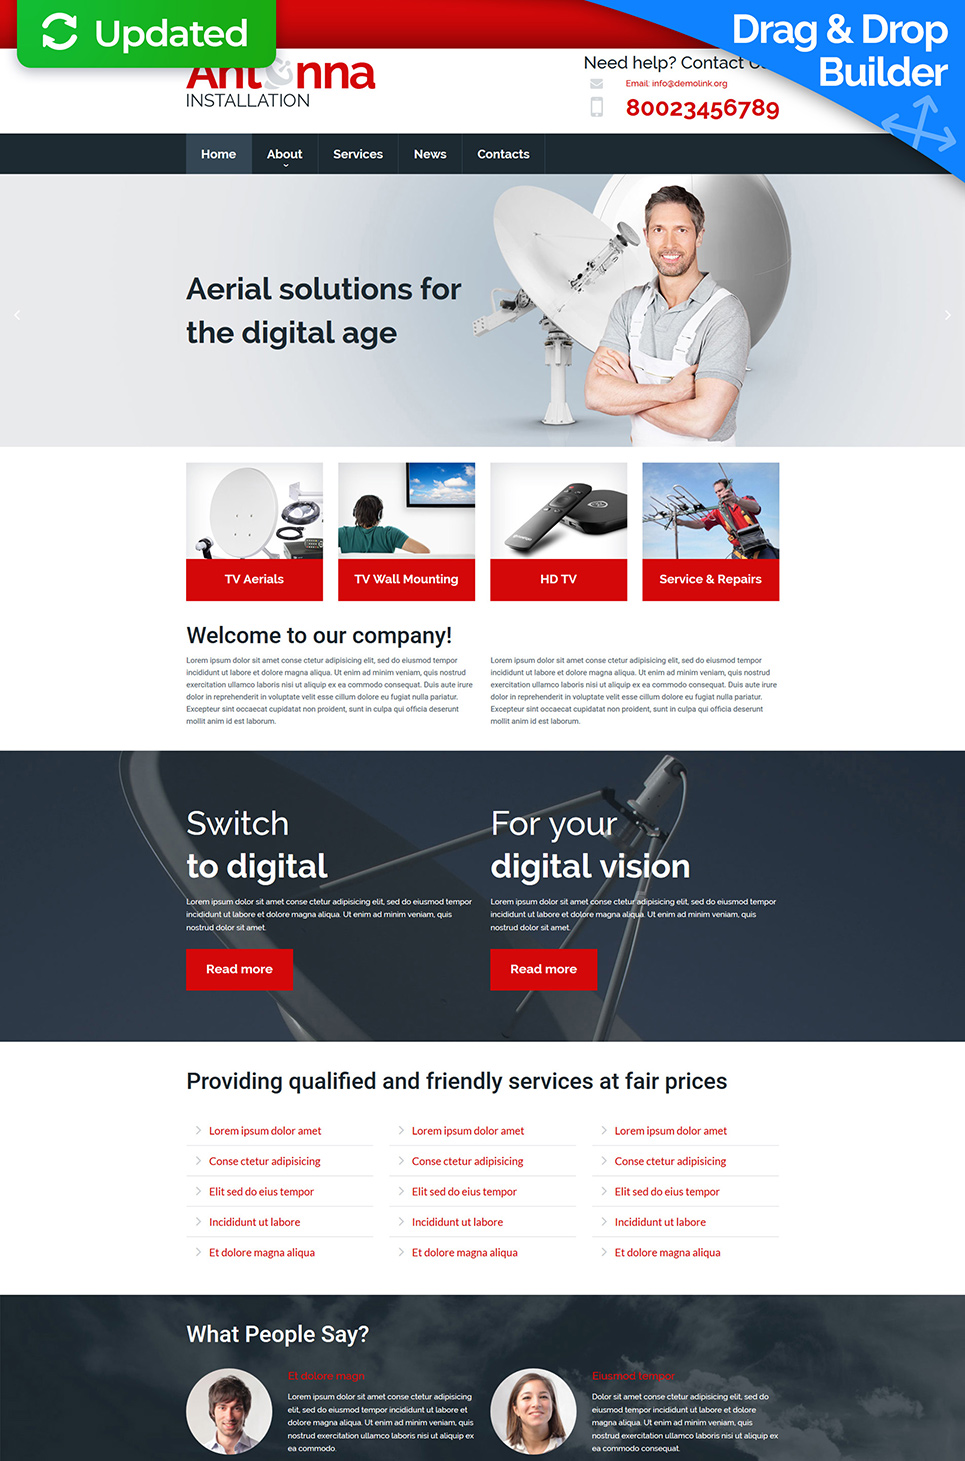 Website Design for Antenna Installations - image